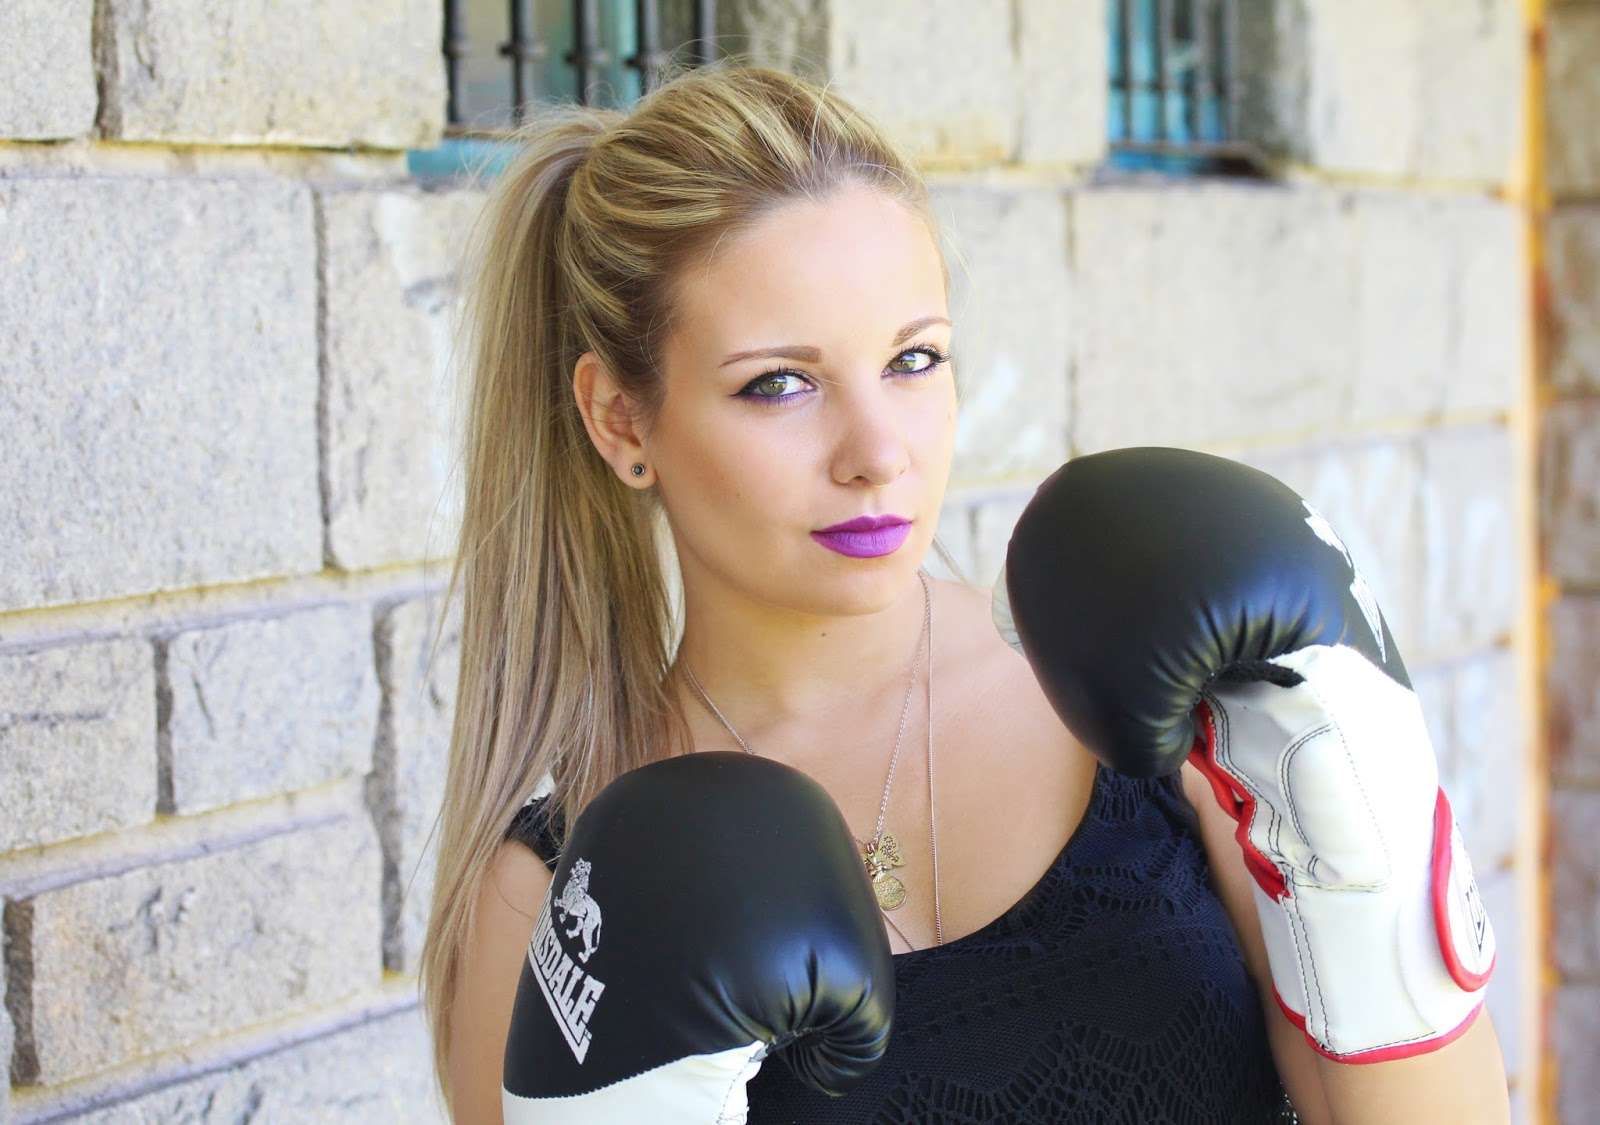 Andrea rosychicc boxing